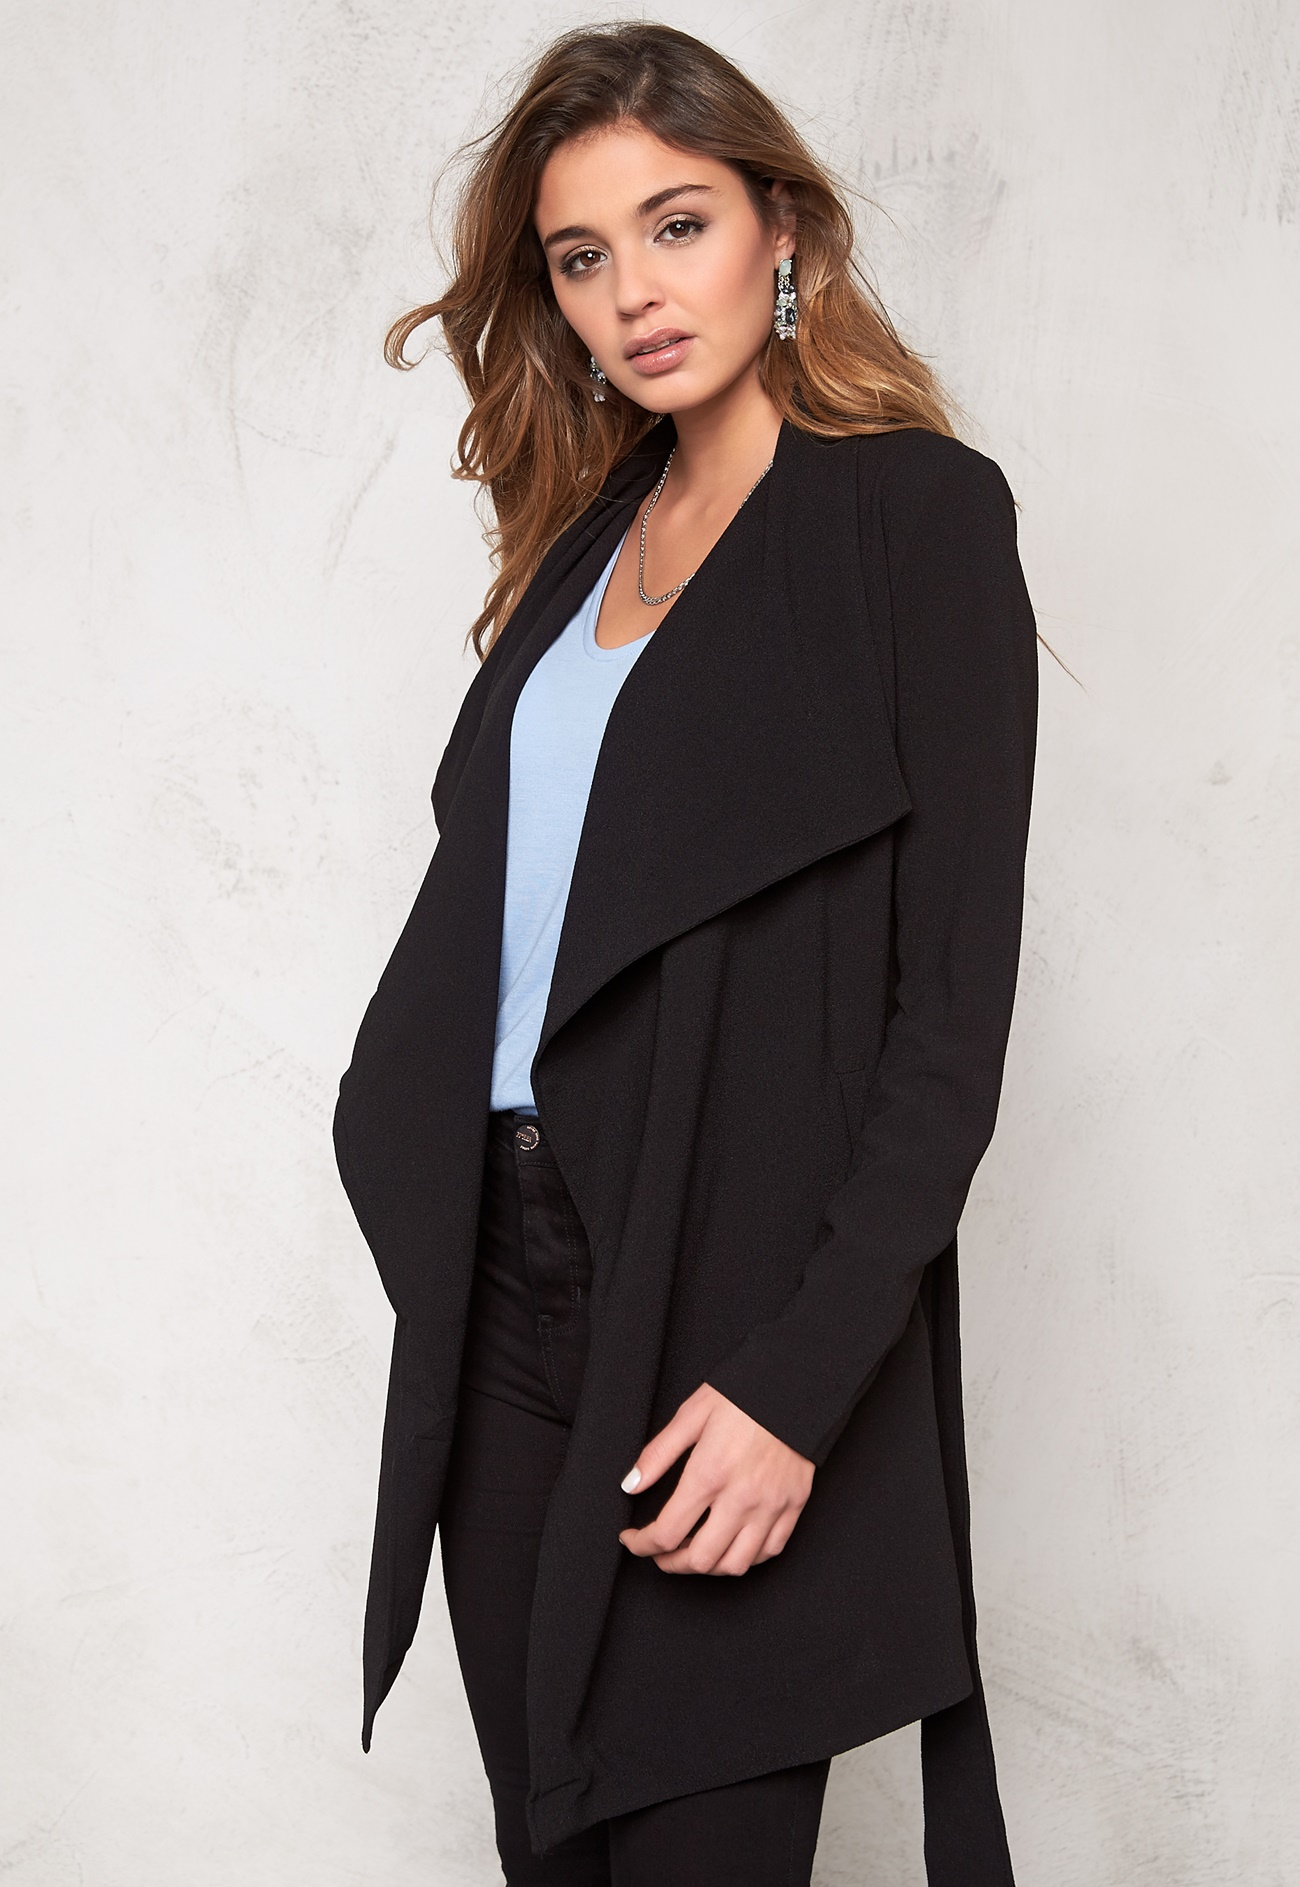 Black coat for spring - New releases in the fashion world photo ...